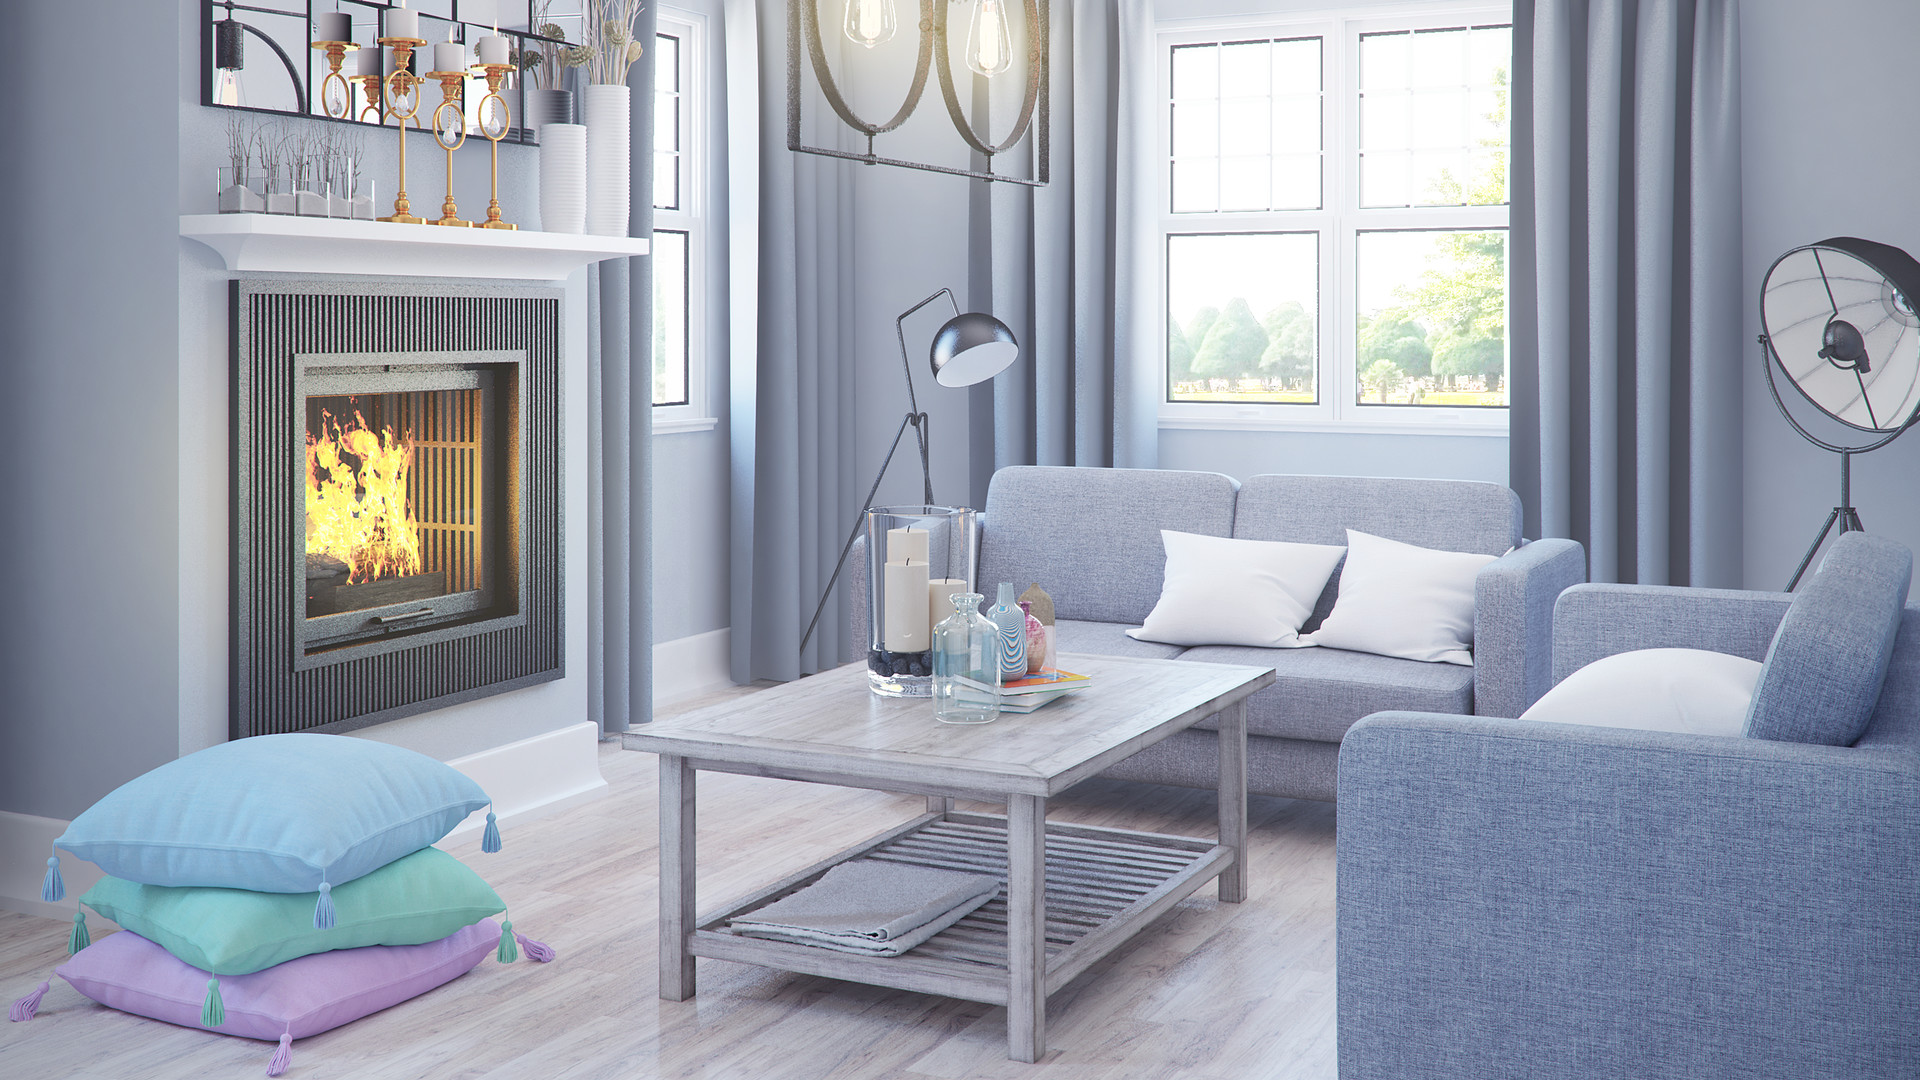 Living Room 3D Models Collection 2022